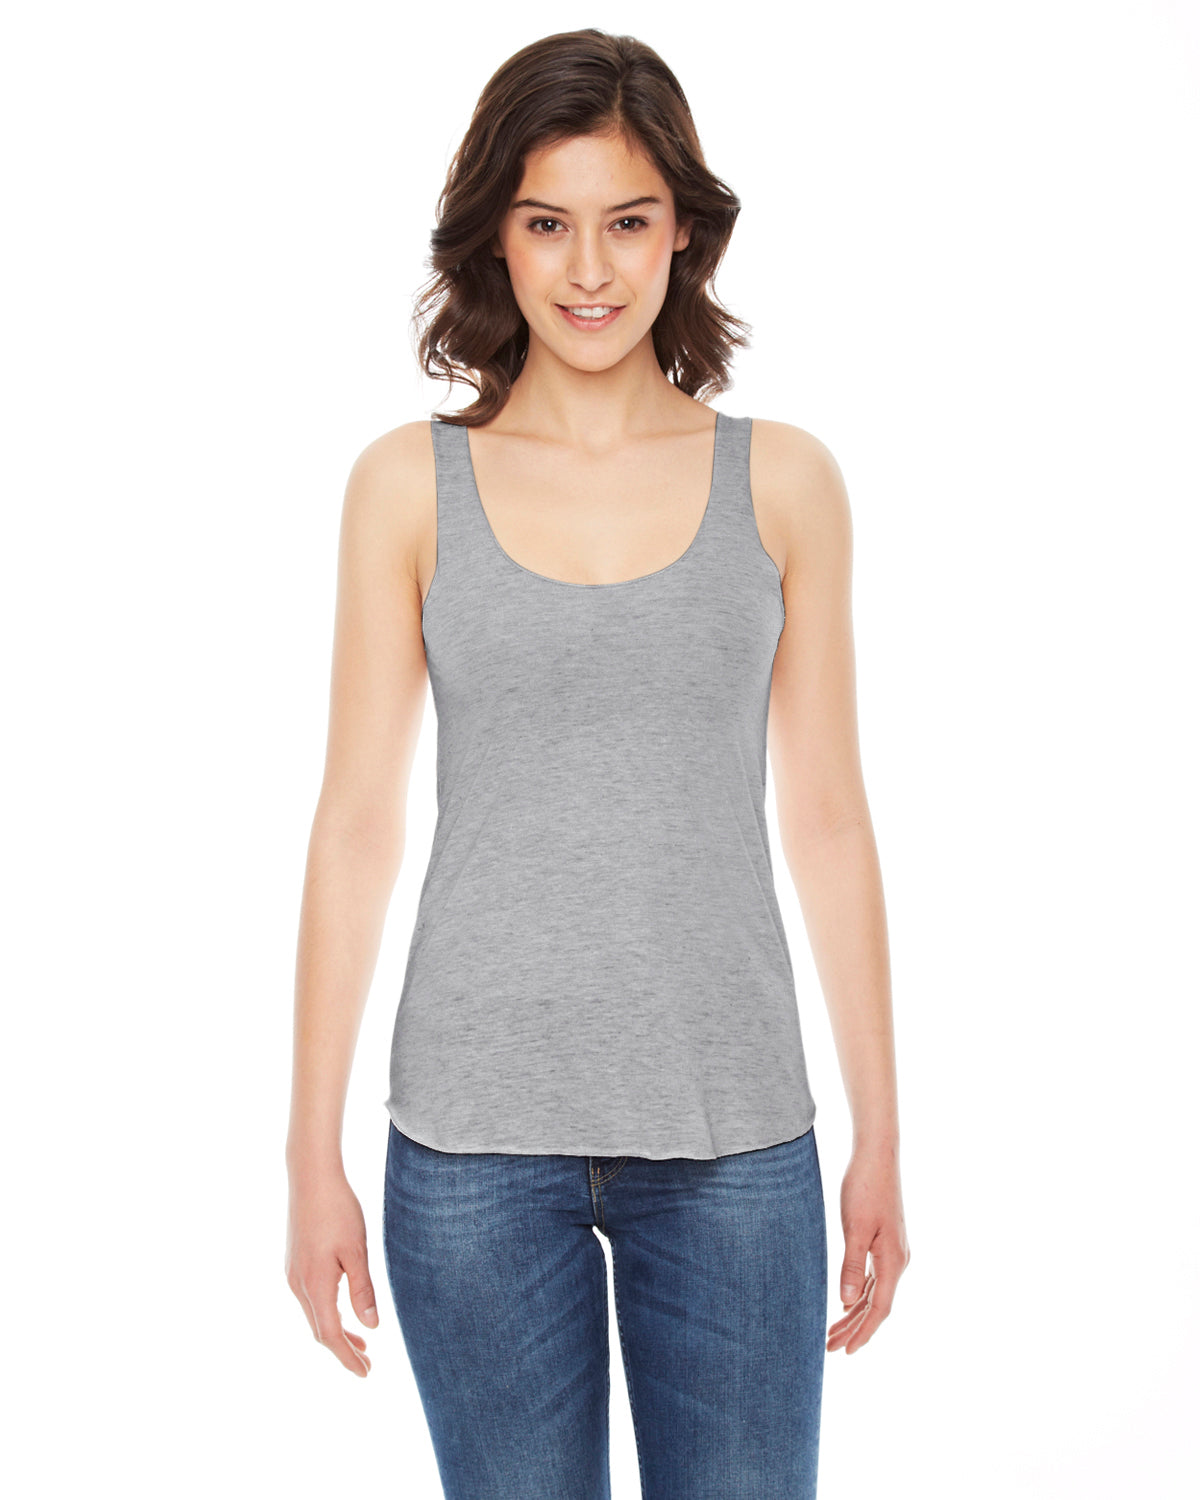 AMERICAN APPAREL LADIES TRI-BLEND RACER BACK TANK